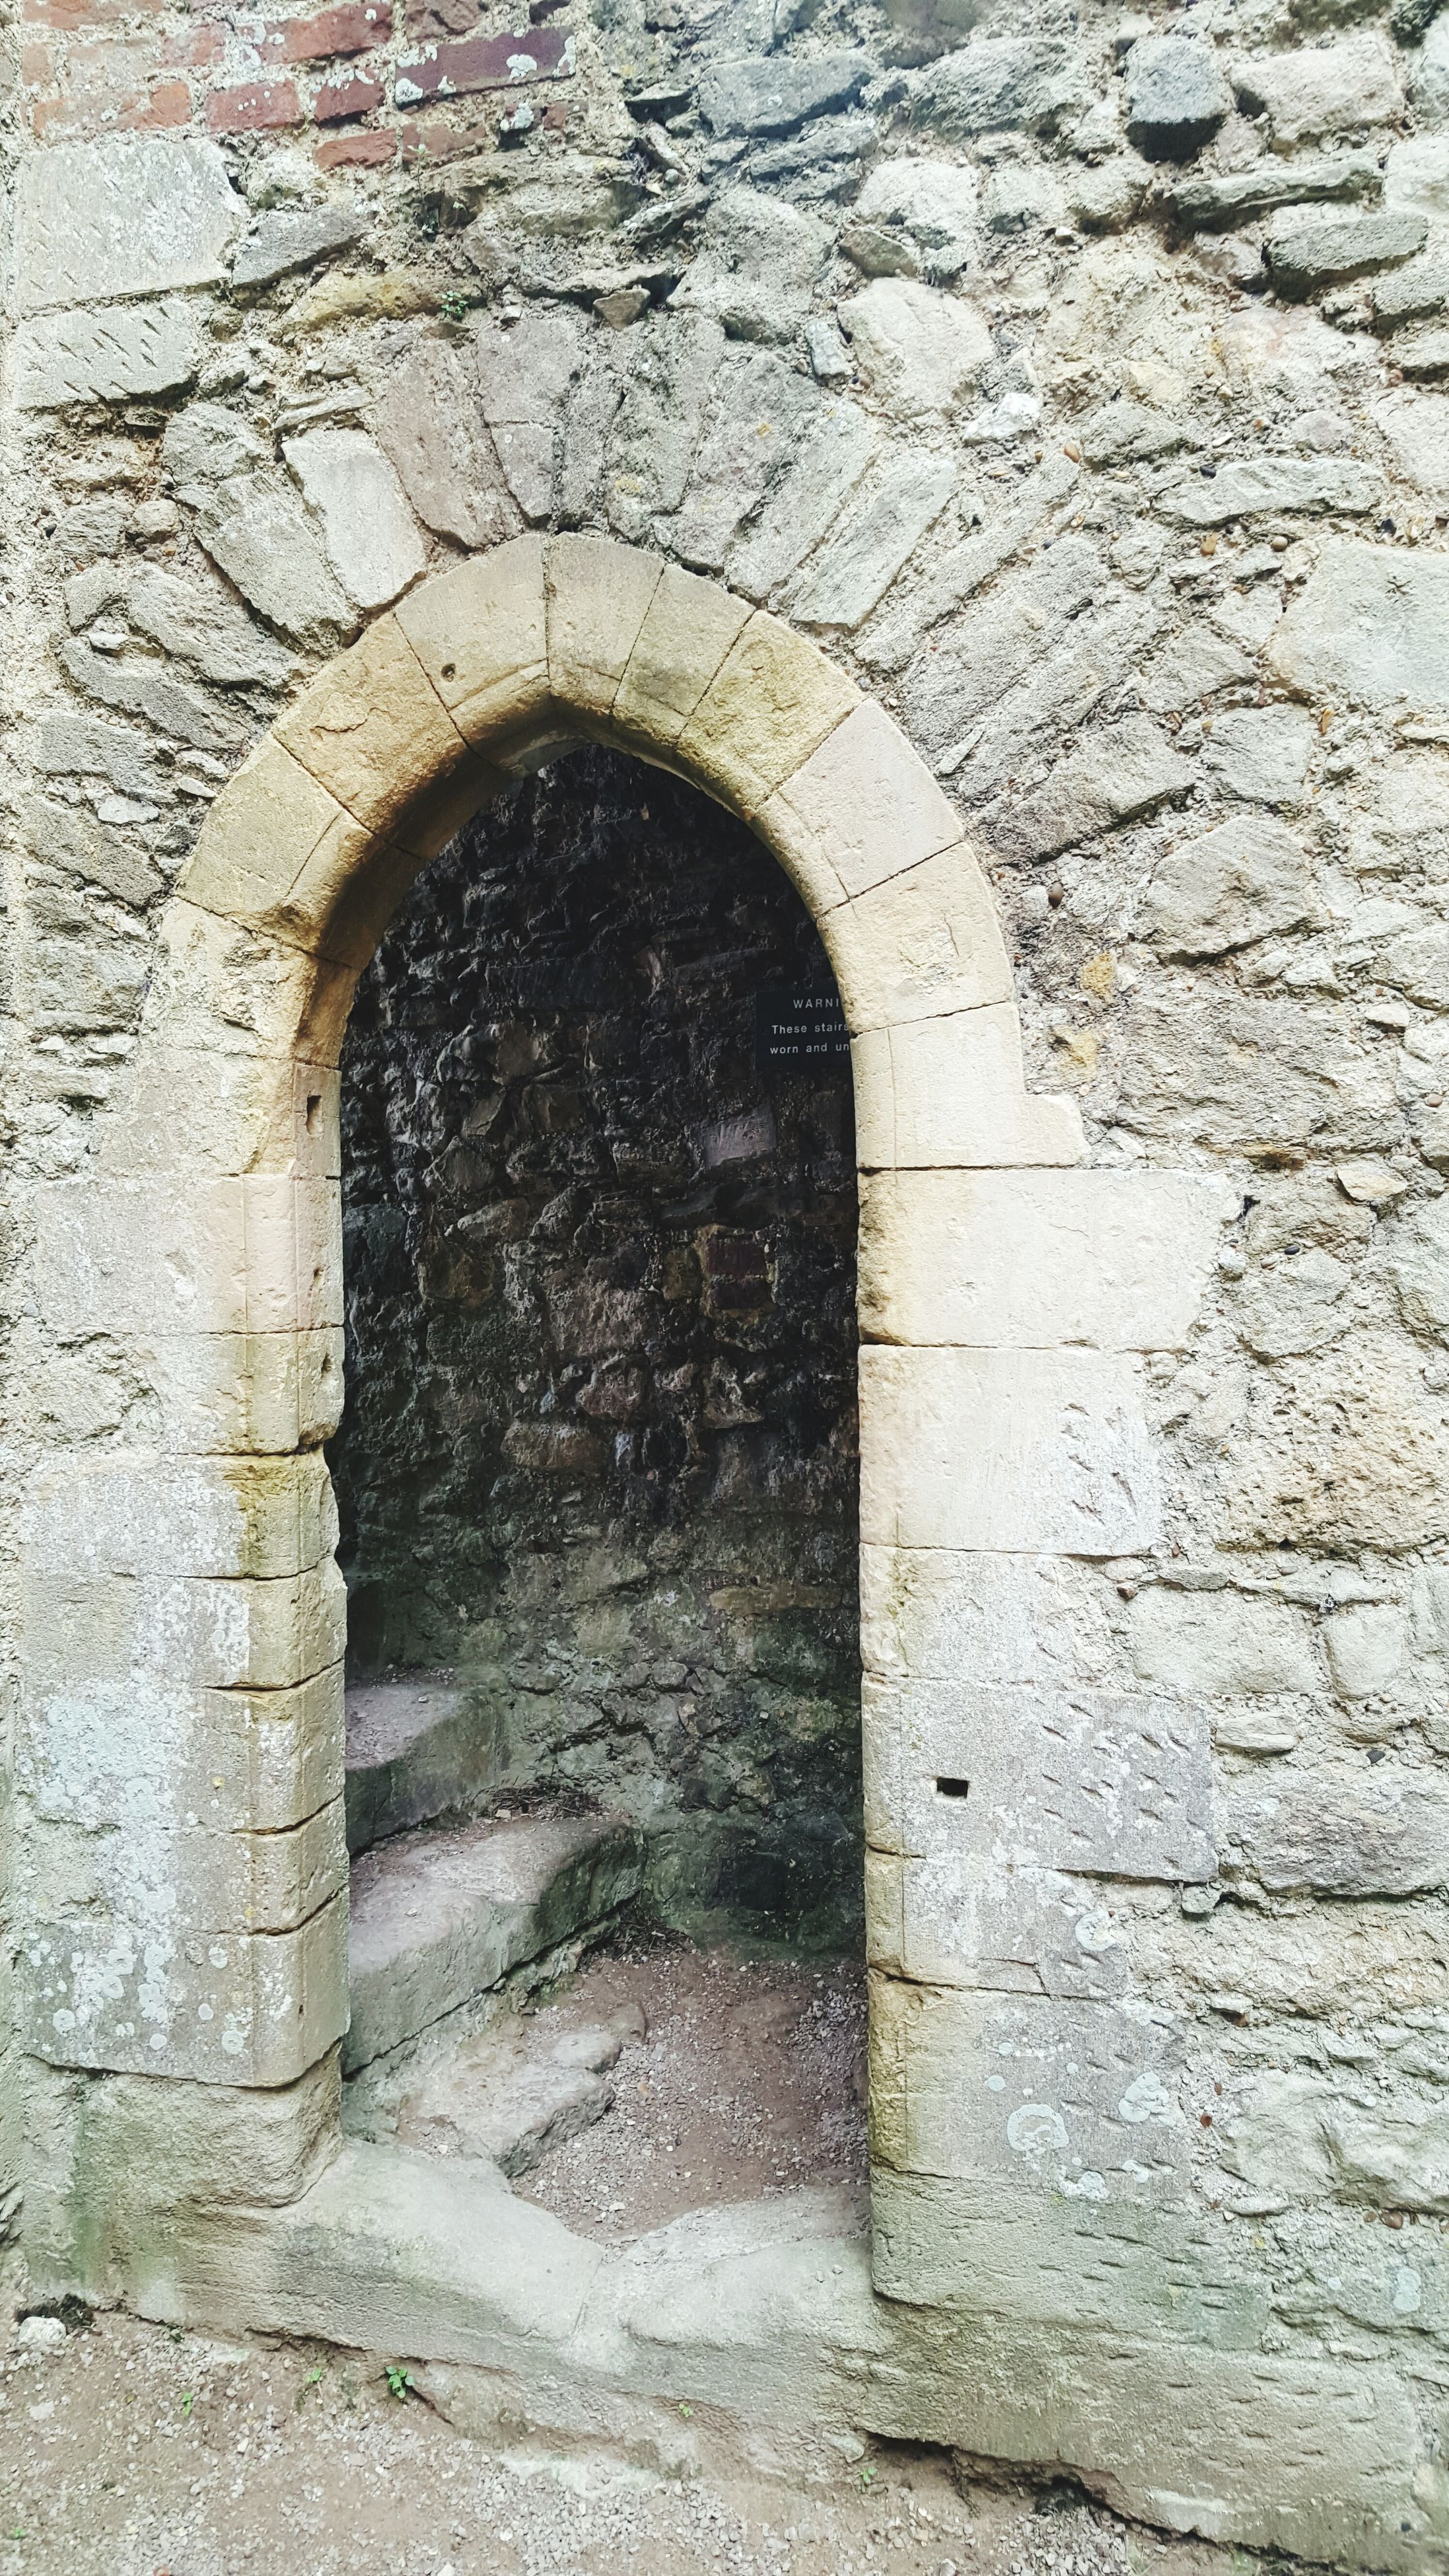 arch, architecture, built structure, wall - building feature, brick wall, stone wall, building exterior, circle, tunnel, old, day, weathered, hole, archway, wall, street, outdoors, textured, no people, cobblestone